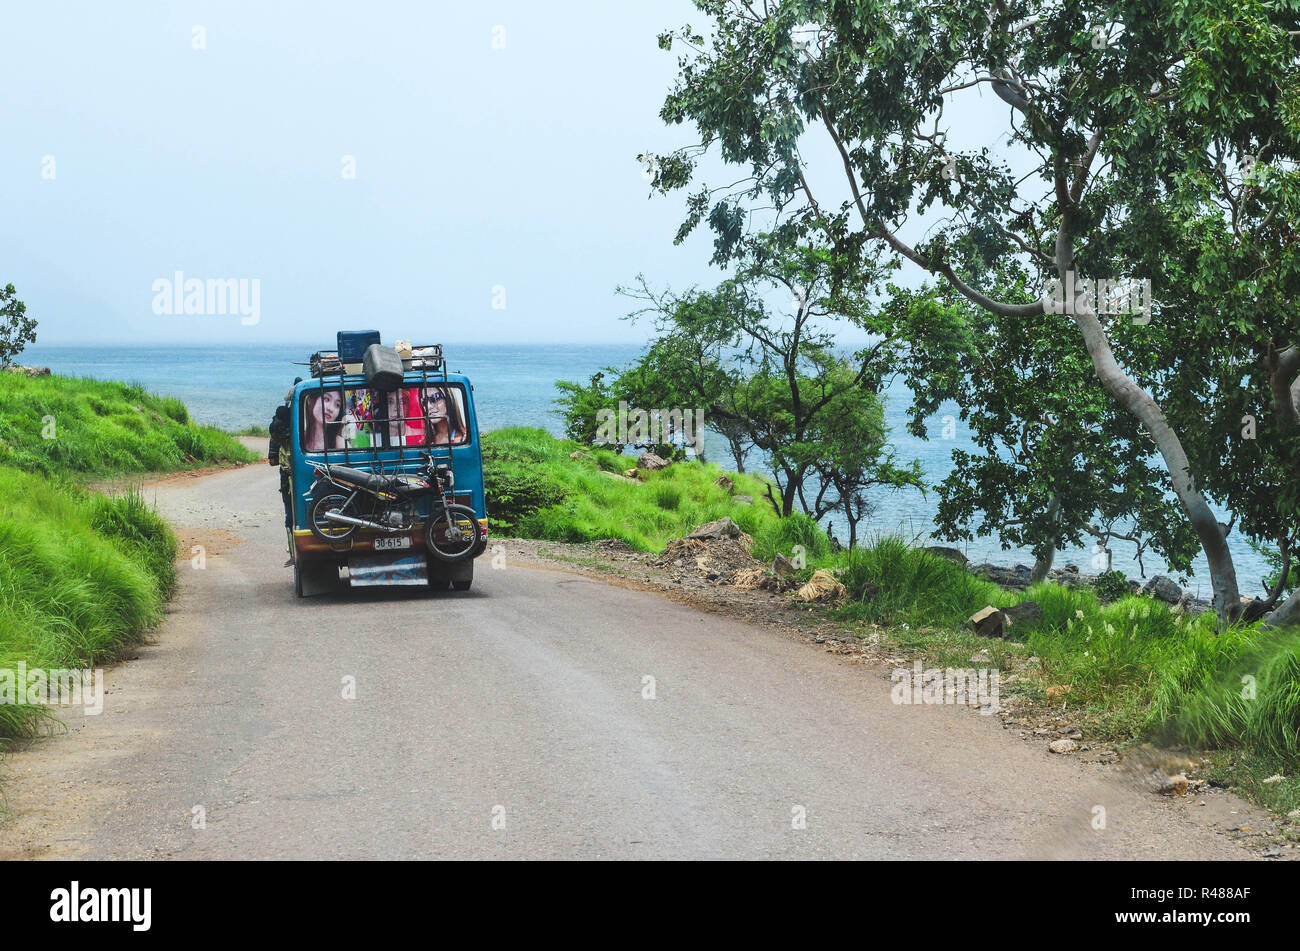 Atauro Island and Dili, East Timor (Timor Leste) Stock Photo